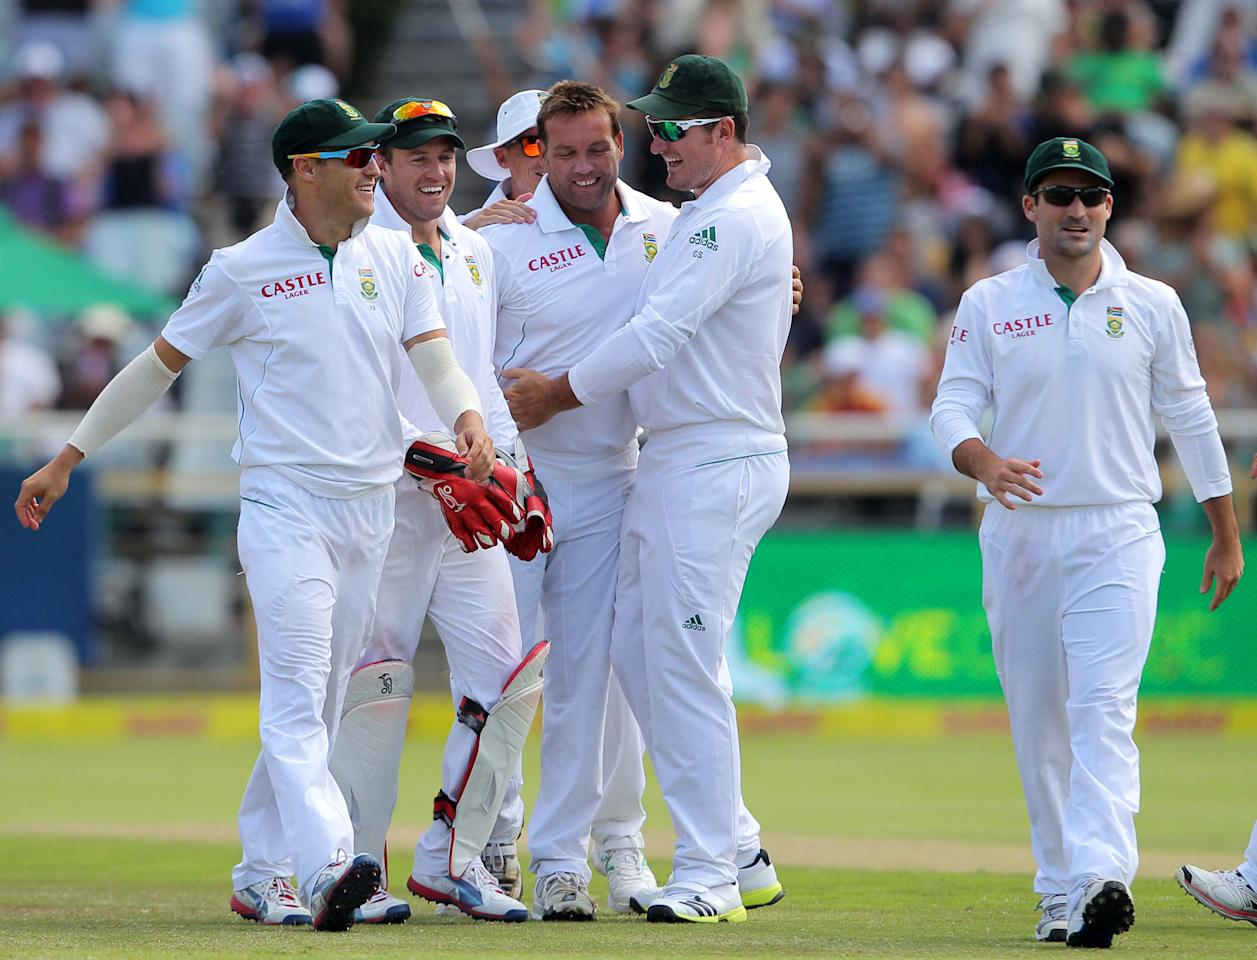 CAPE TOWN, SOUTH AFRICA - JANUARY 03:  Jacques Kallis of South Africa celebrates the wicket of Kane Williamson during day 2 of the 1st Test between South Africa and New Zealand at Sahara Park Newlands on January 03, 2013 in Cape Town, South Africa.  (Photo by Carl Fourie/Gallo Images/Getty Images)